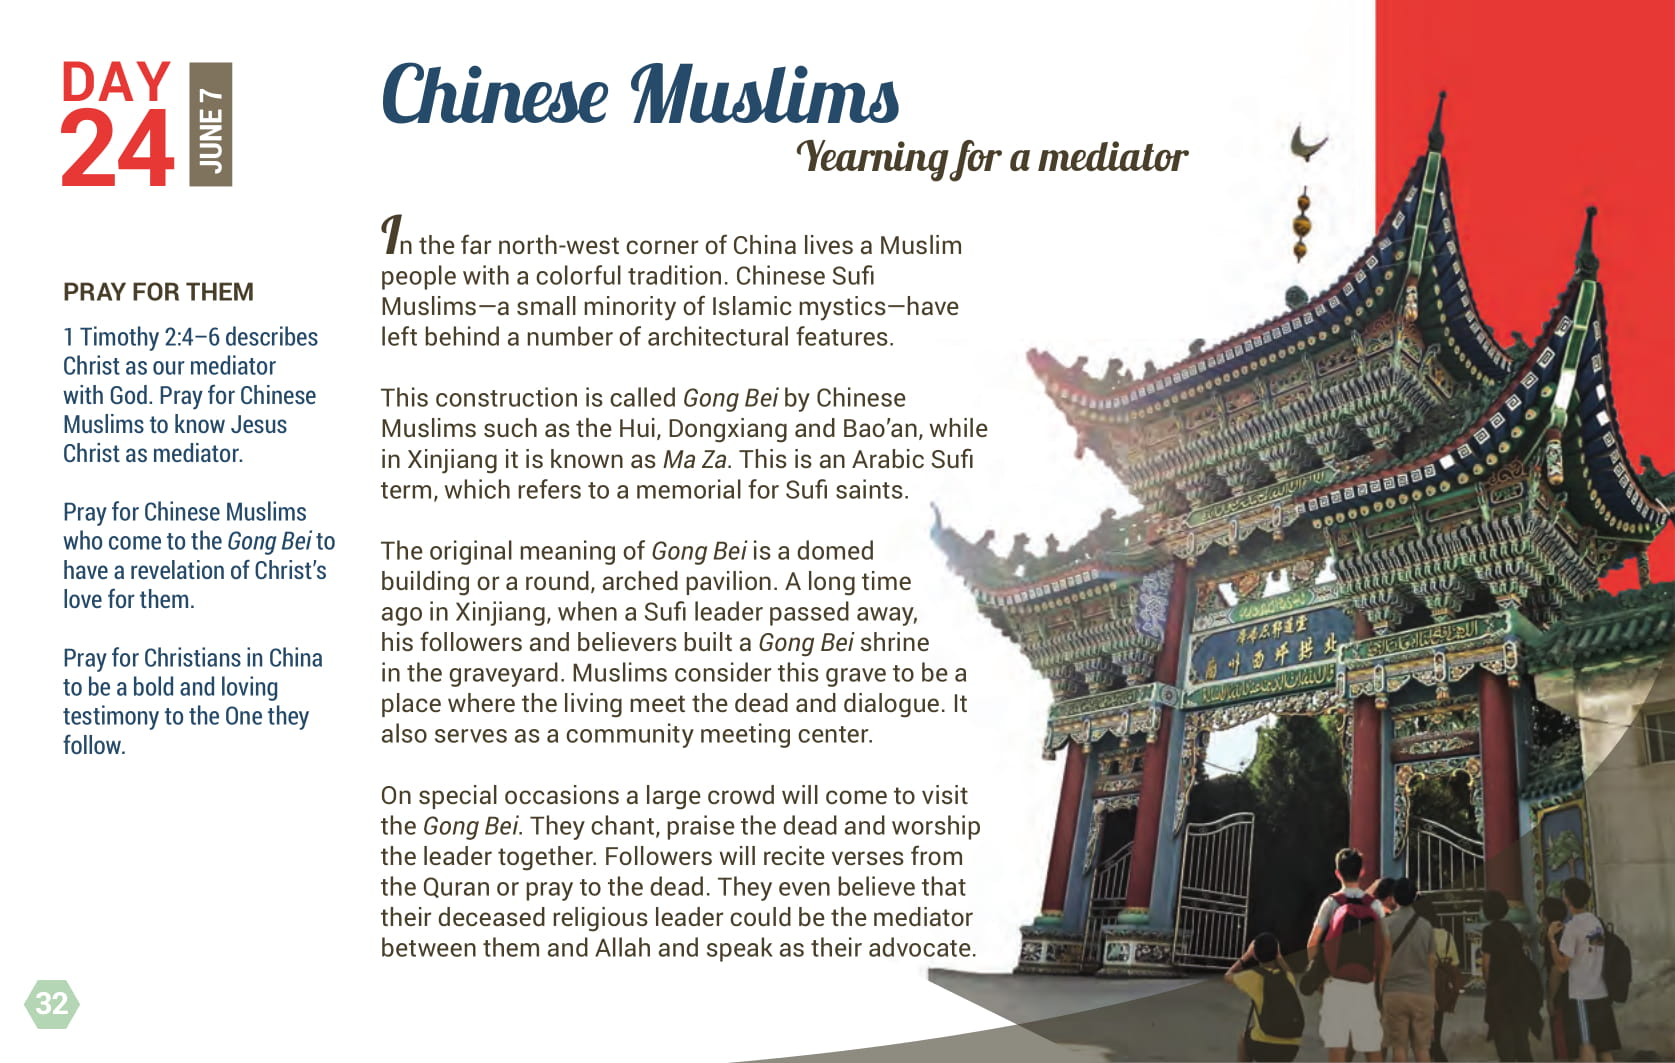 Day 24 - Chinese Muslims